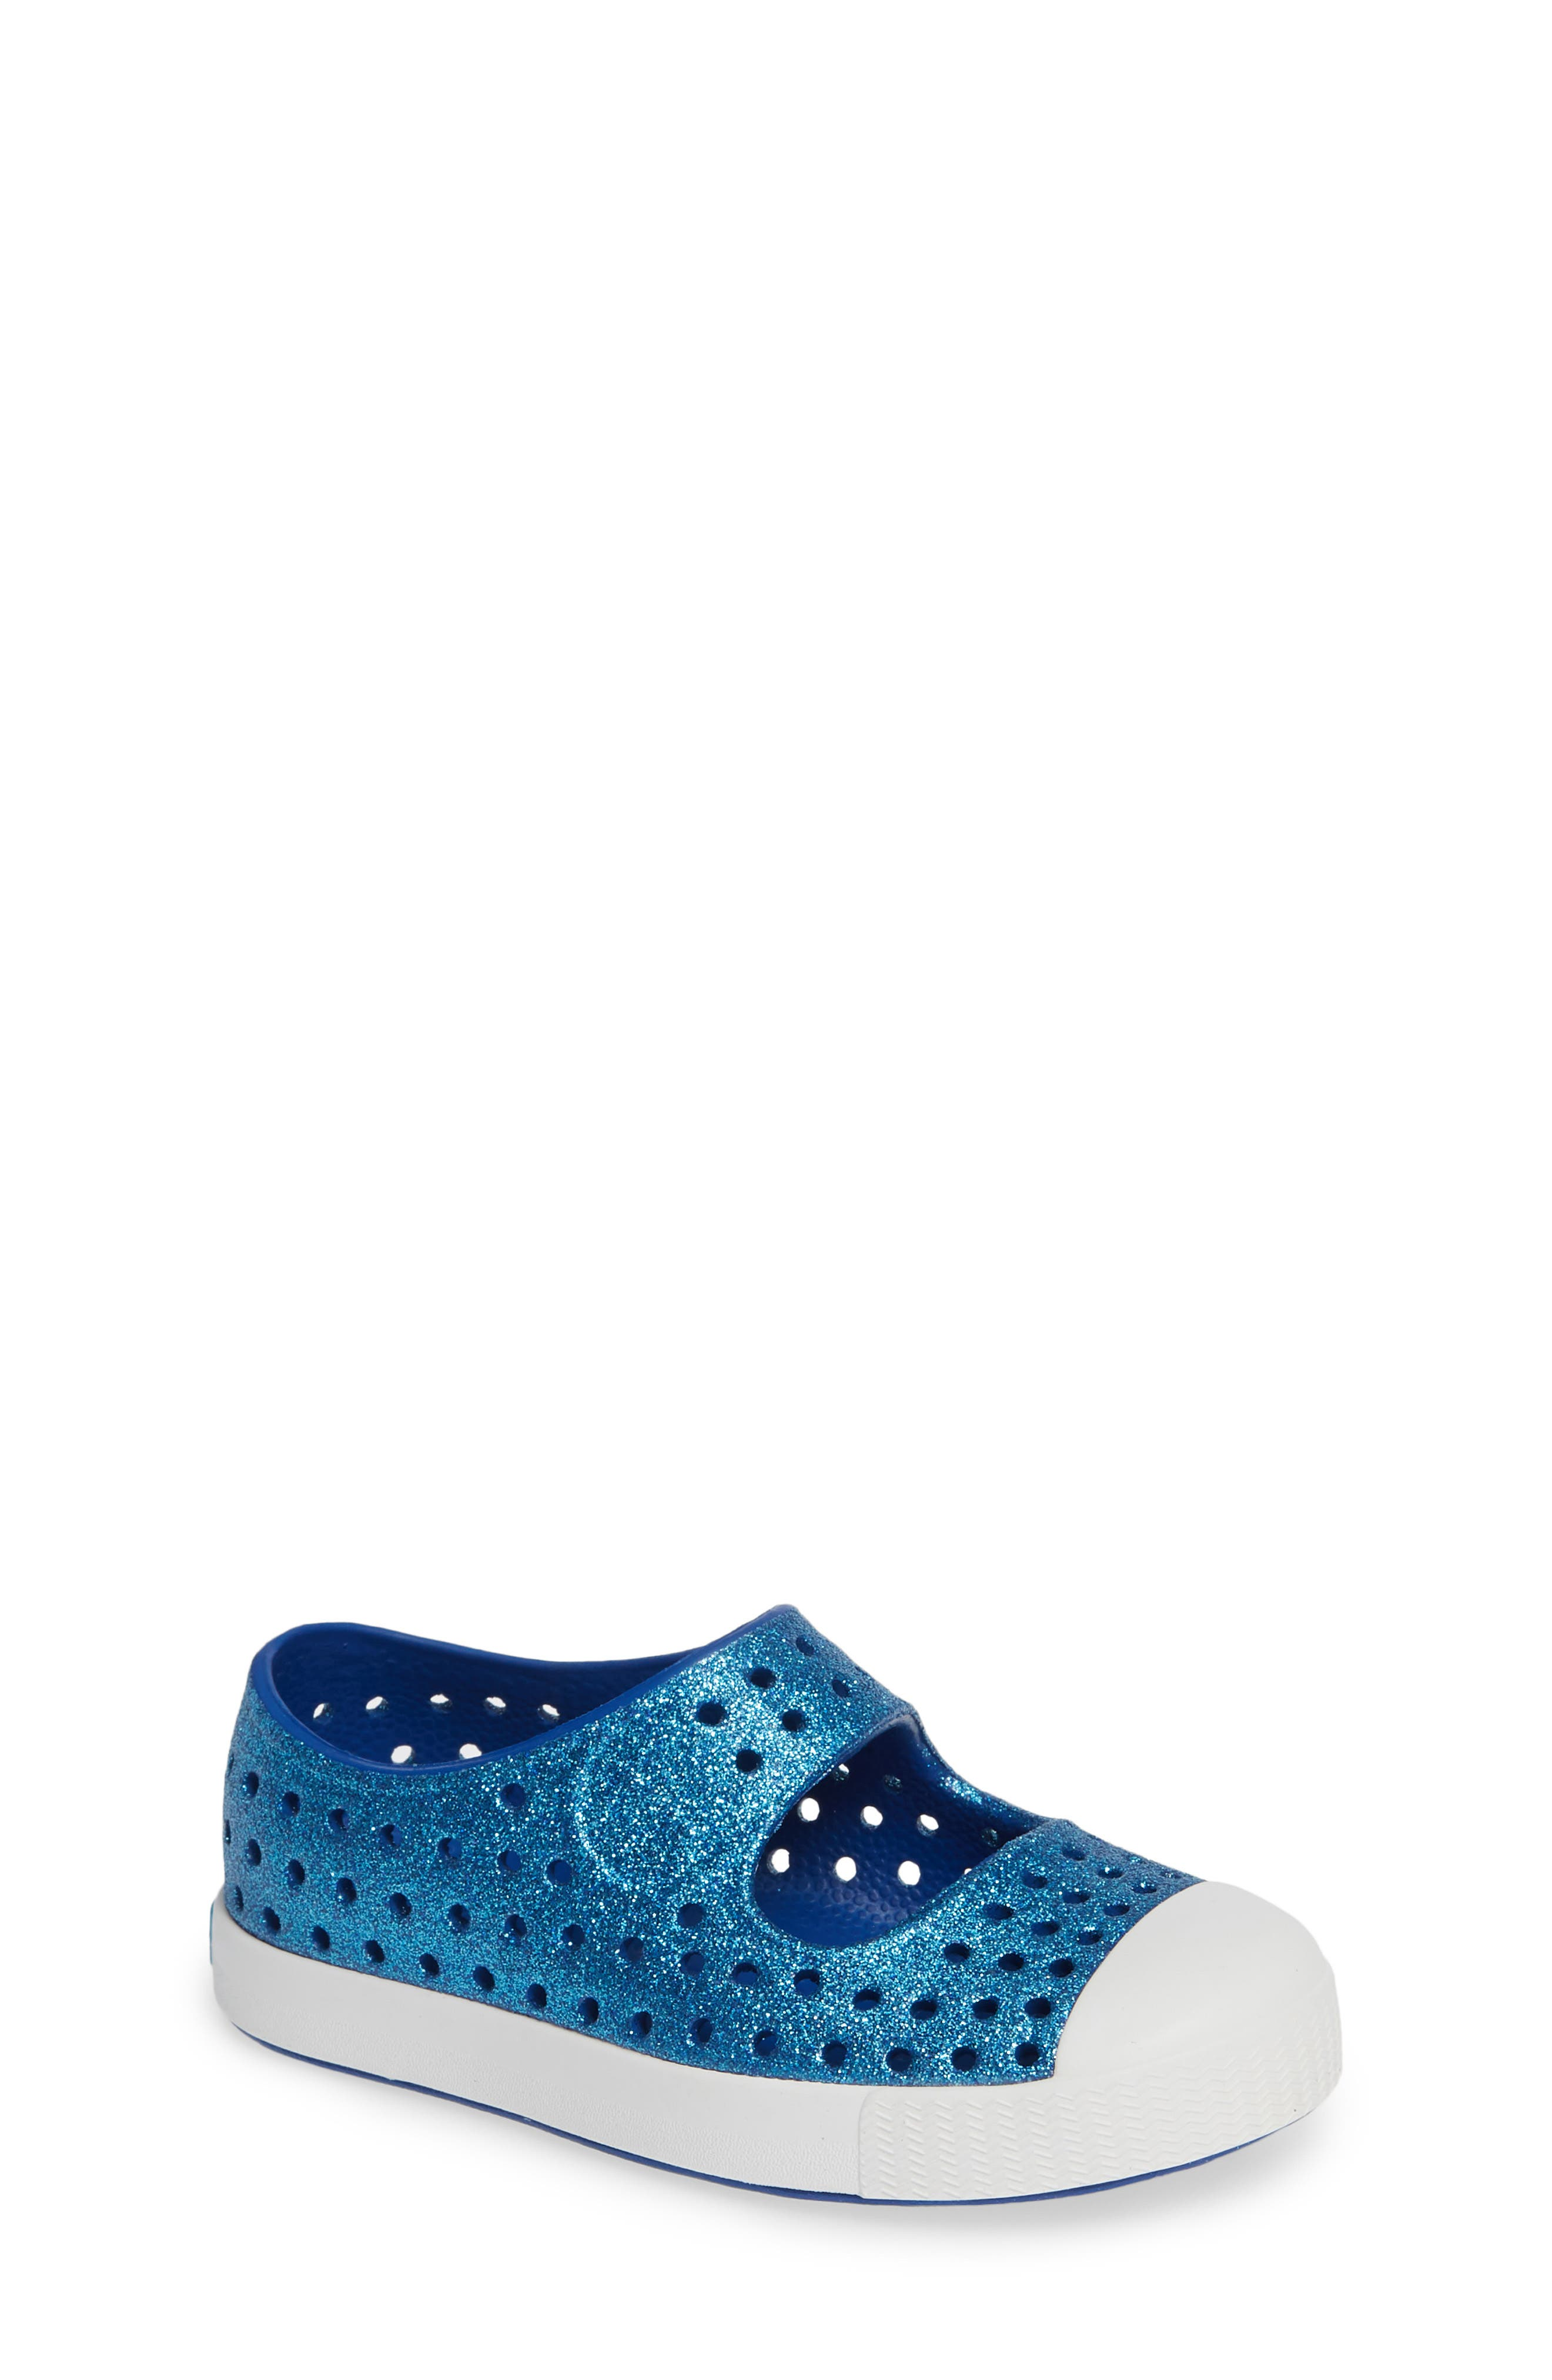 Juniper Bling Glitter Perforated Mary Jane,                         Main,                         color, VICTORIA BLING/ SHELL WHITE